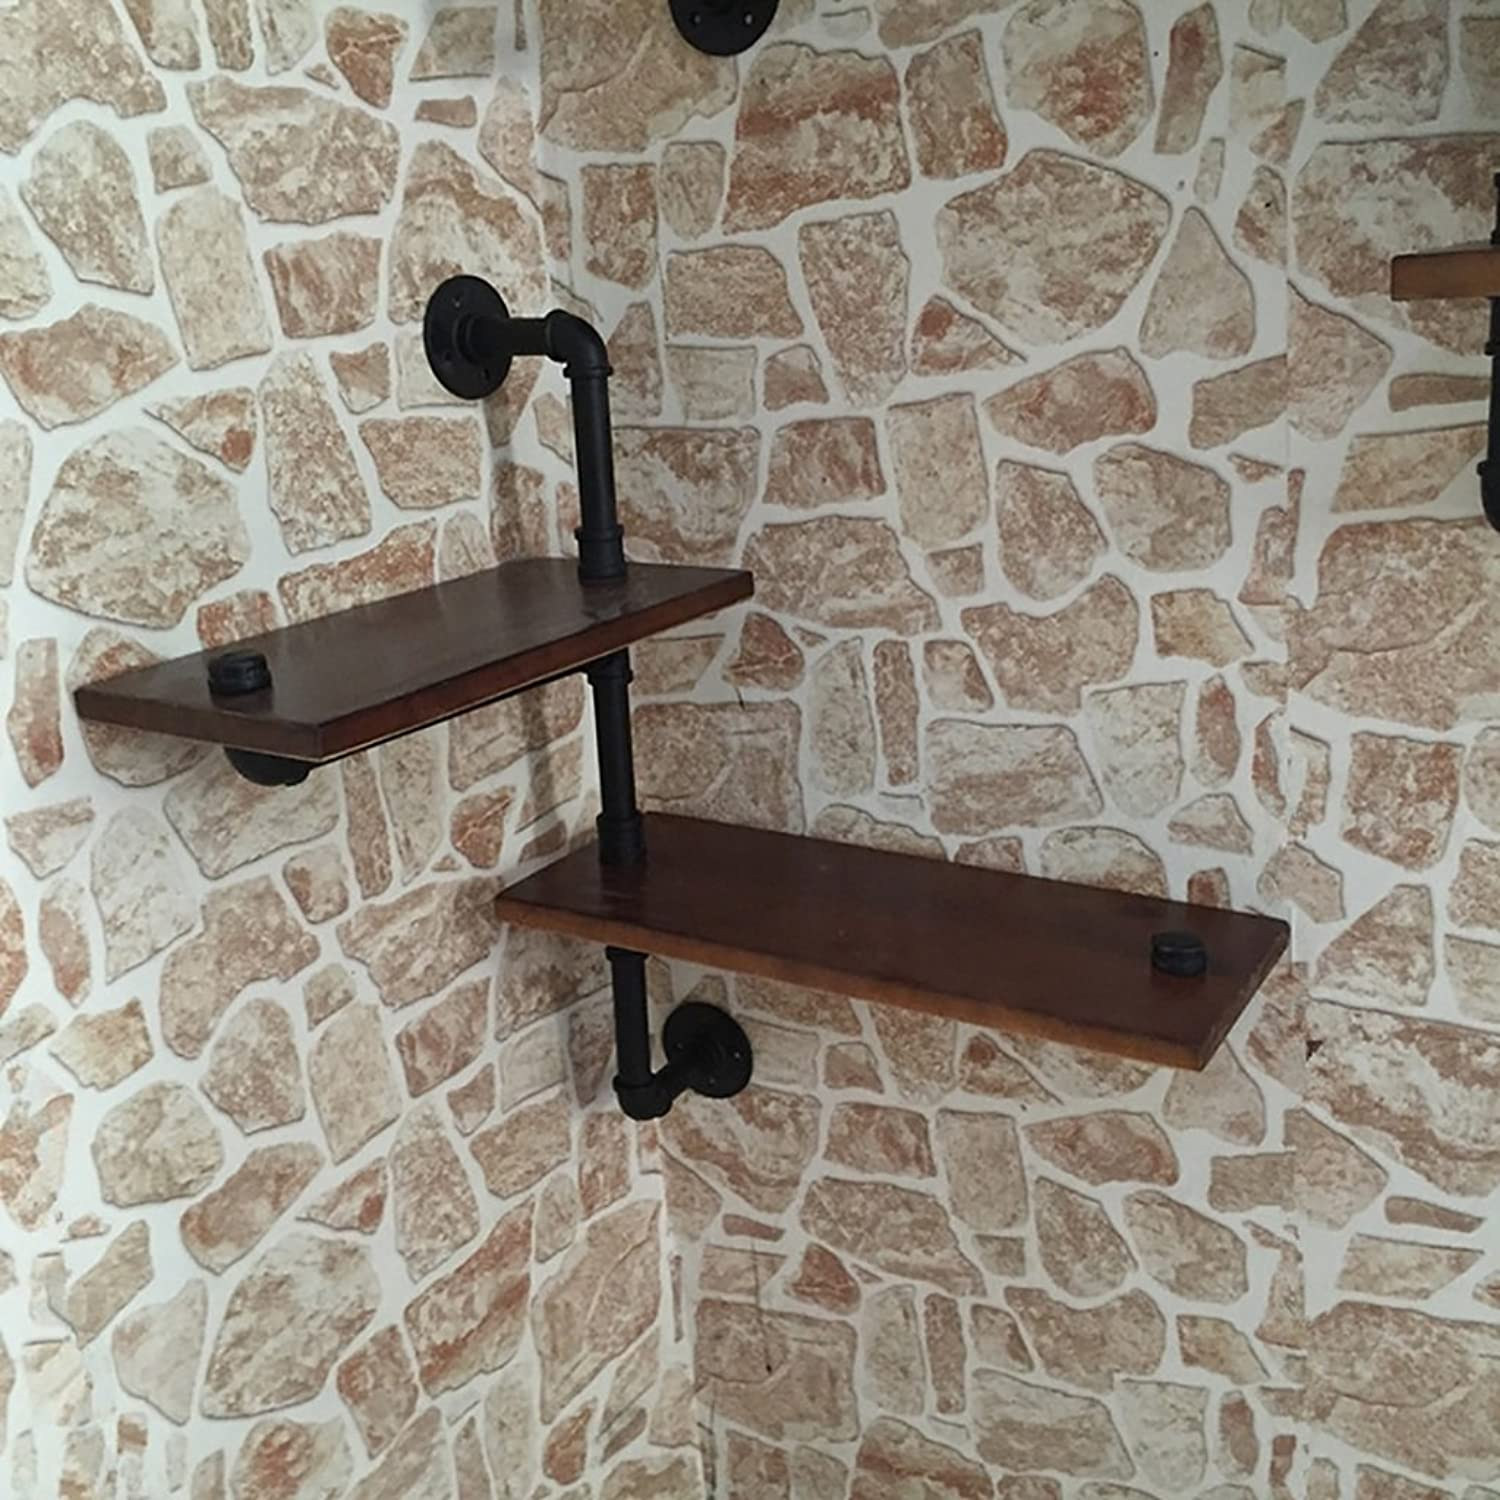 LOFT Retro Iron Bookshelves Solid Wood Wall Hanging Shelves Plant Display Stand Wall Shelves ( color   A )